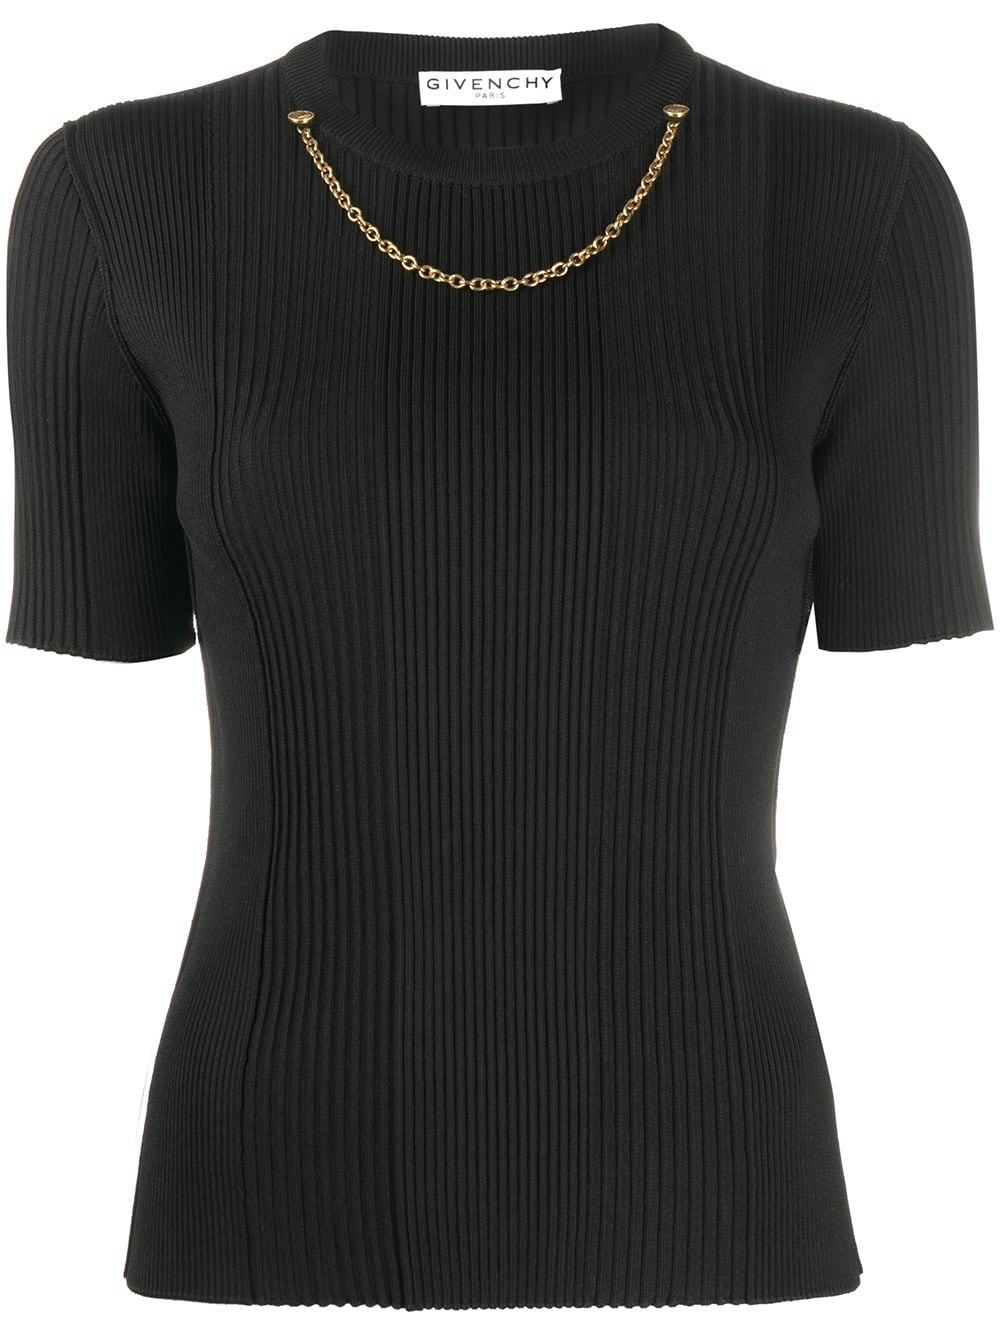 GIVENCHY GIVENCHY | Top | BW60Q54Z76001